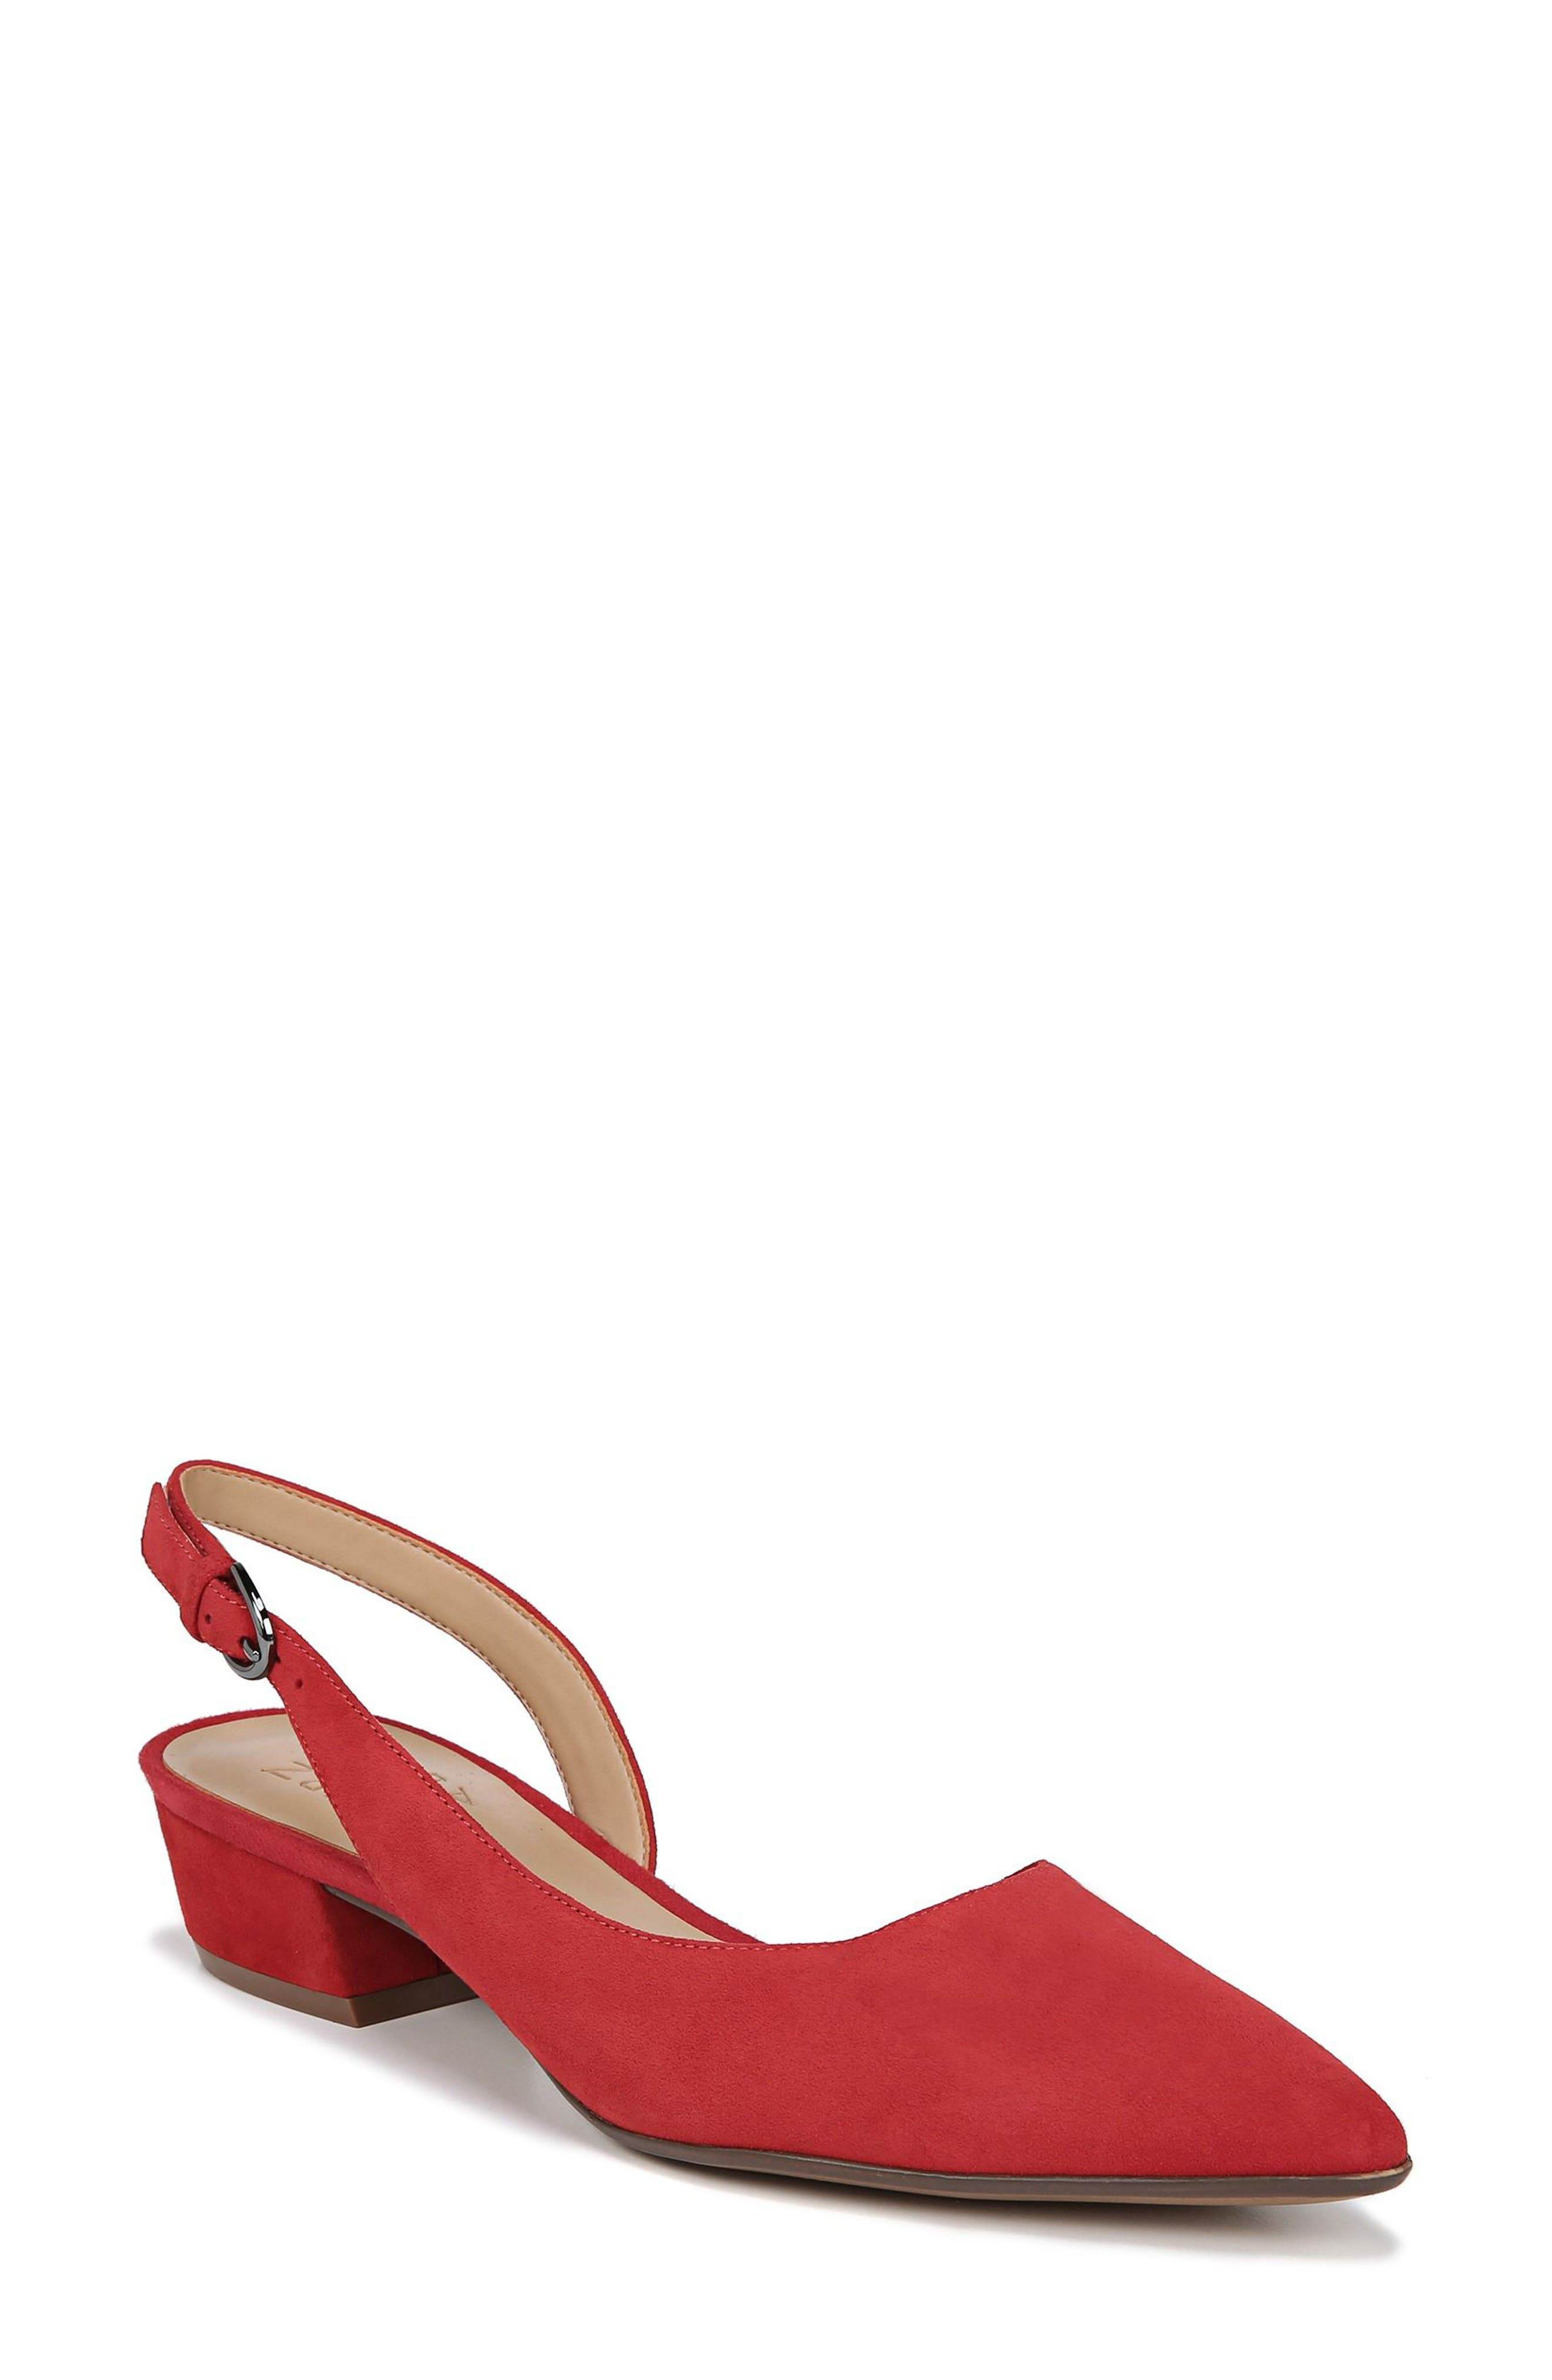 Naturalizer Banks Pump, Red